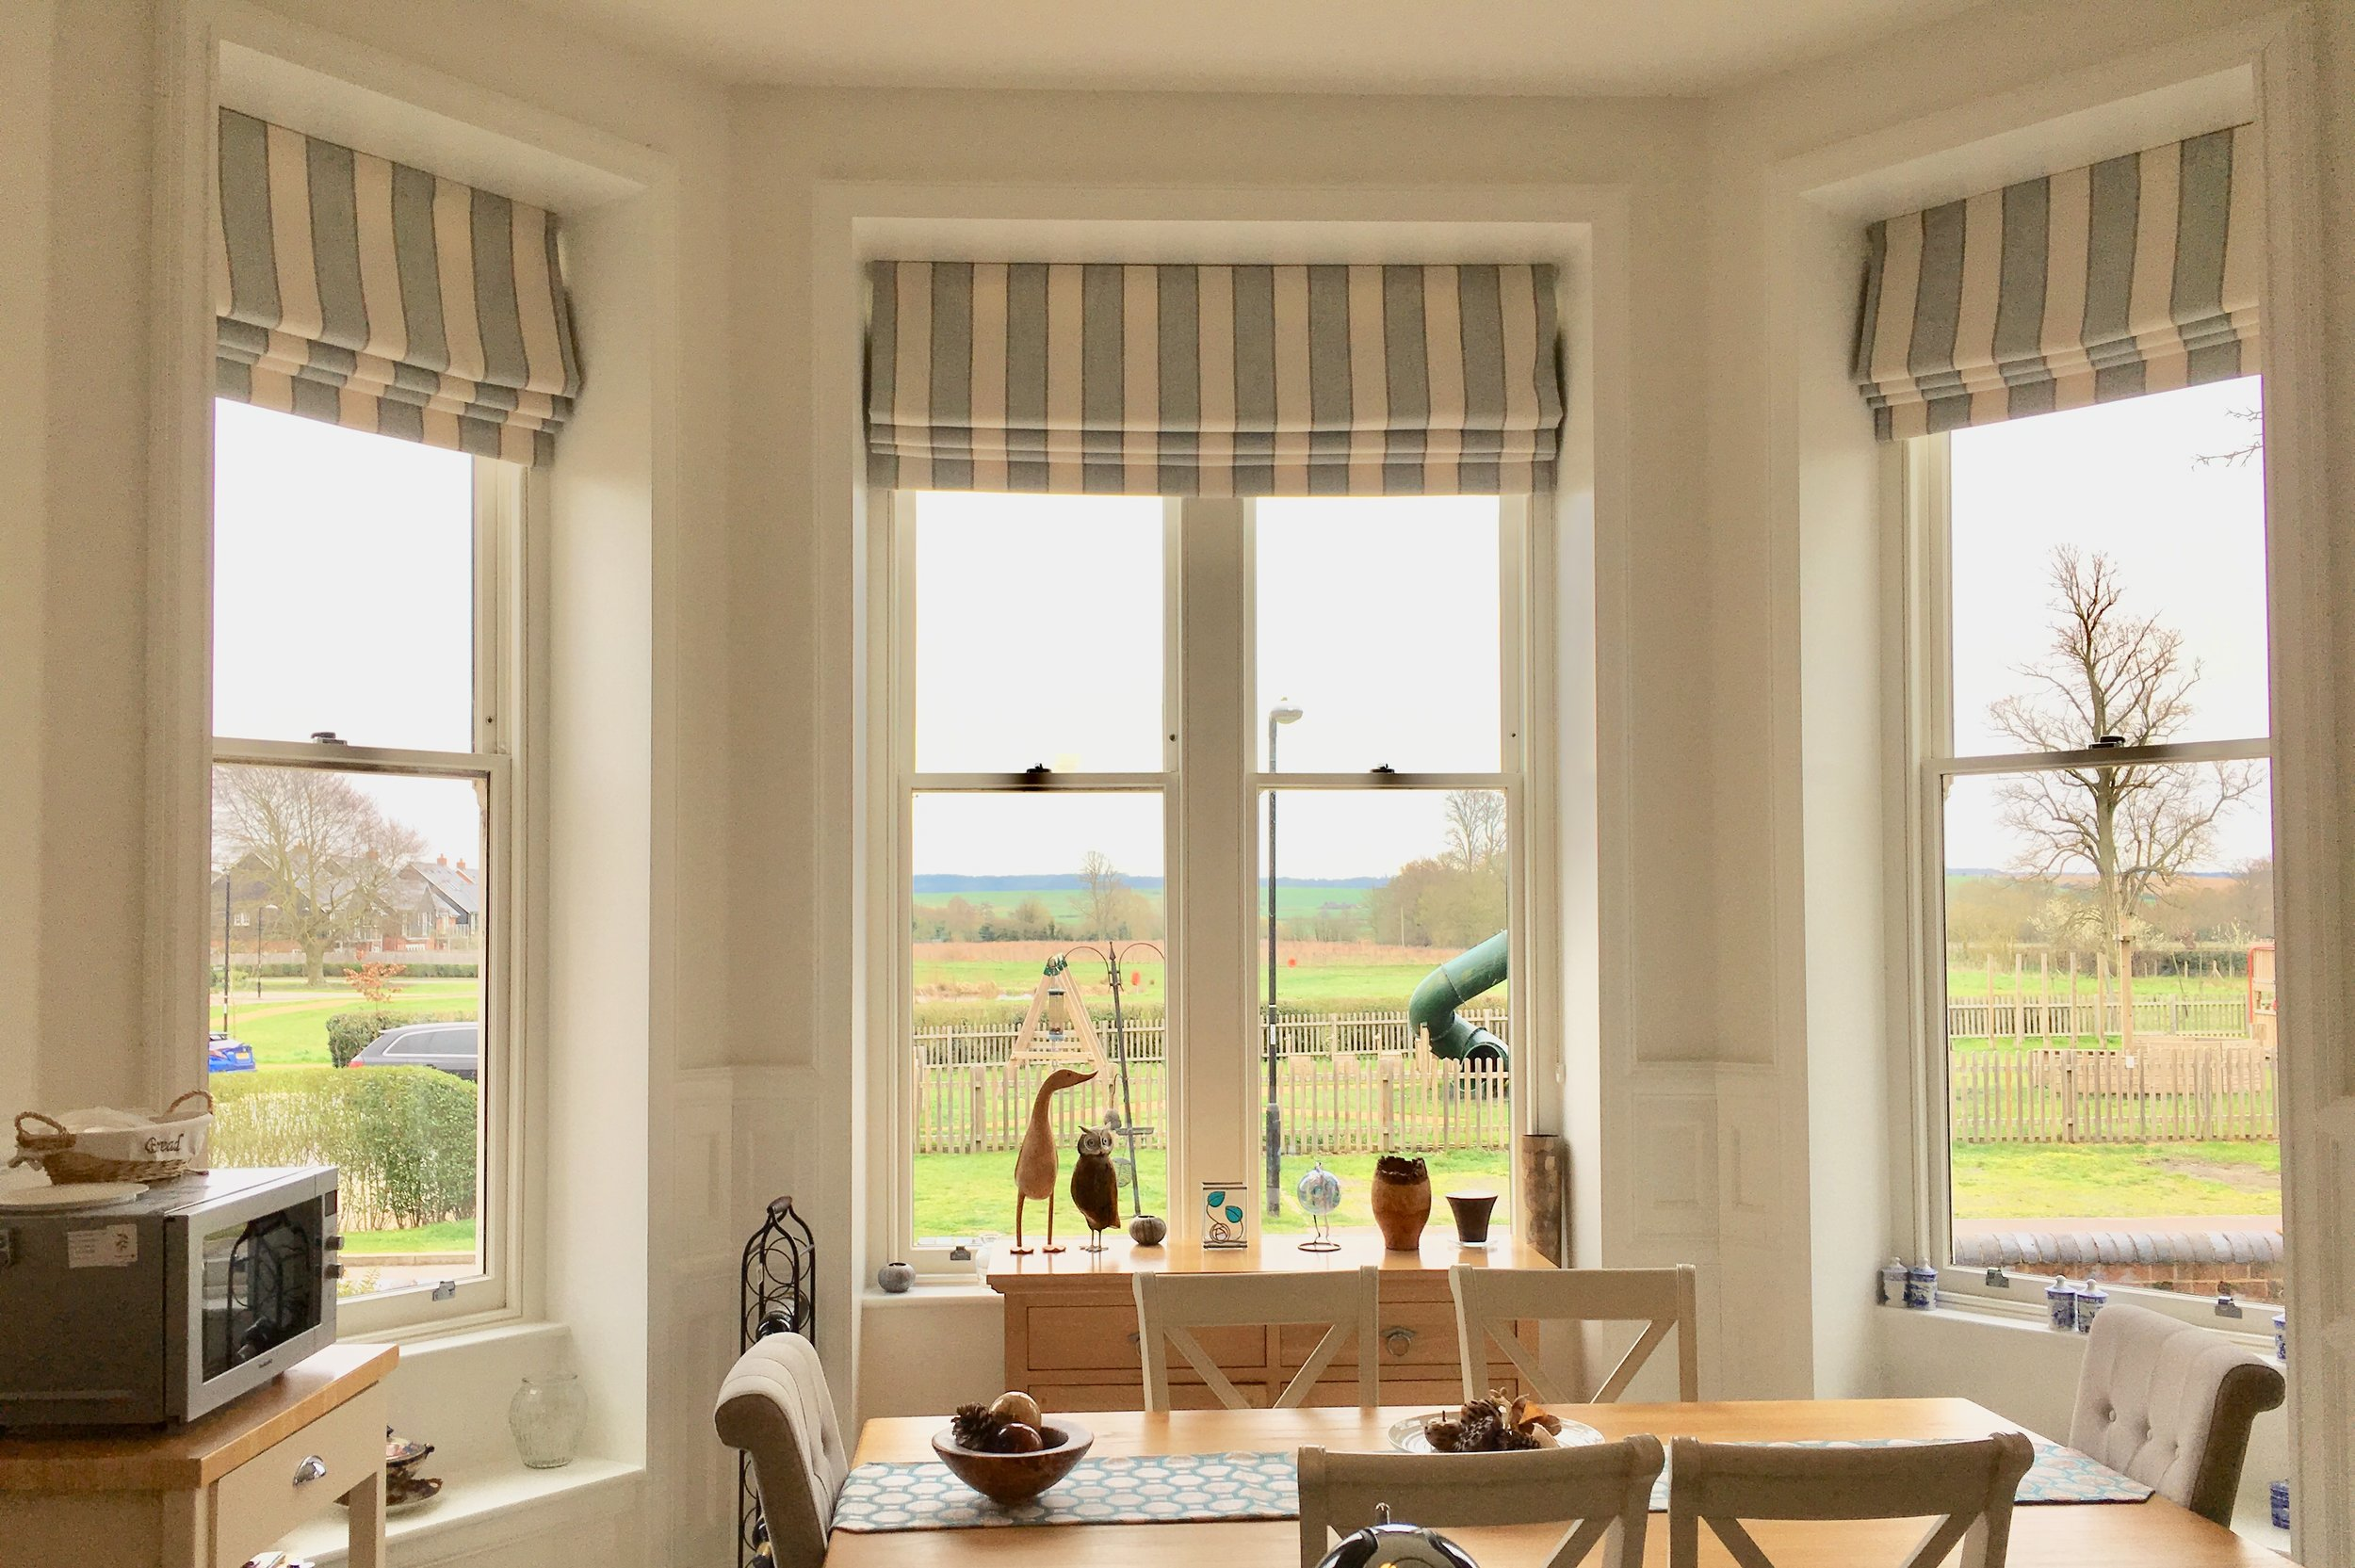 Roman Blinds set inside the recess keep this window looking fresh and uncluttered